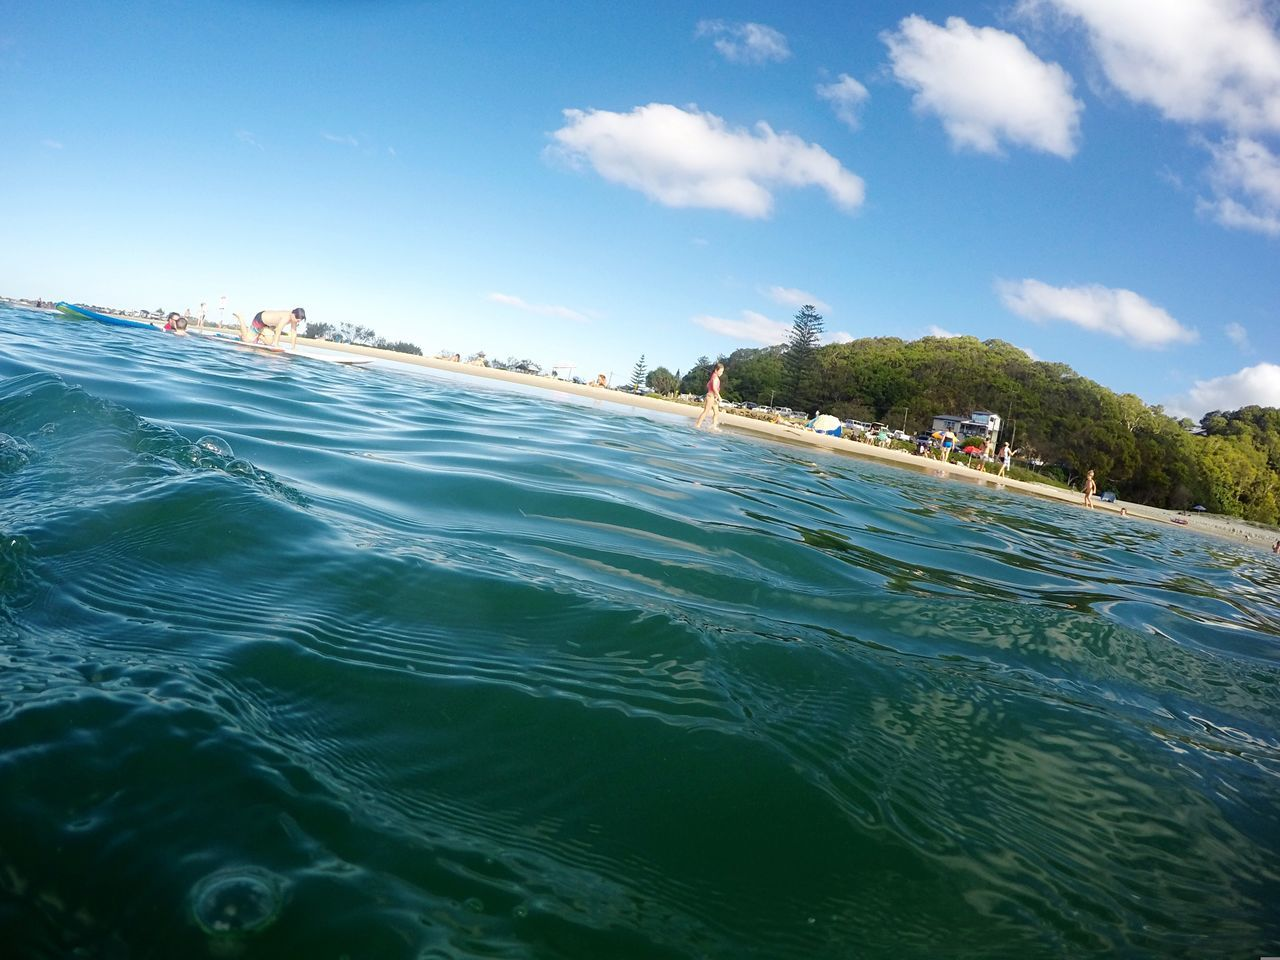 water, sky, fun, vacations, leisure activity, nature, outdoors, real people, motion, adventure, day, men, enjoyment, large group of people, river, lifestyles, beach, blue, scenics, beauty in nature, group of people, women, extreme sports, water slide, people